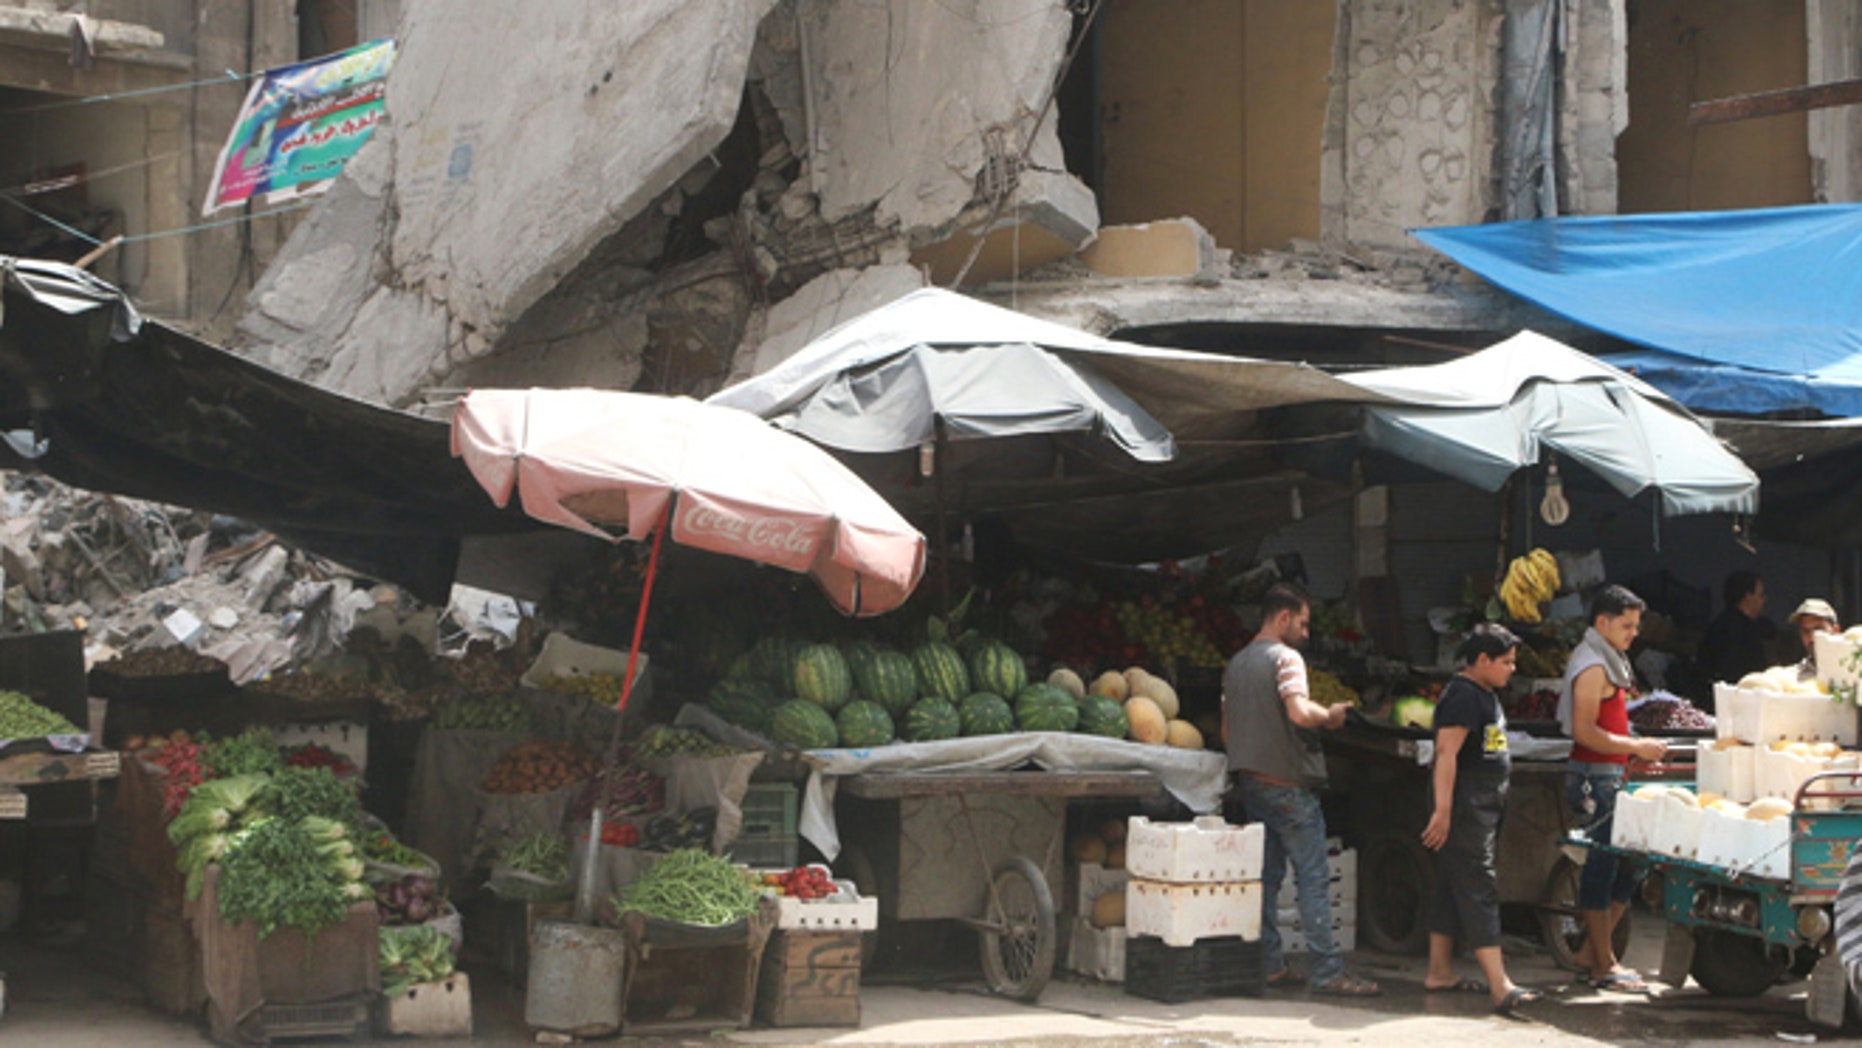 Vendors wait for customers near their stalls erected in front of damaged buildings during the holy month of Ramadan in the rebel held area of Aleppo's al-Shaar district, Syria, June 15, 2016. REUTERS/Abdalrhman Ismail - RTX2GDRZ